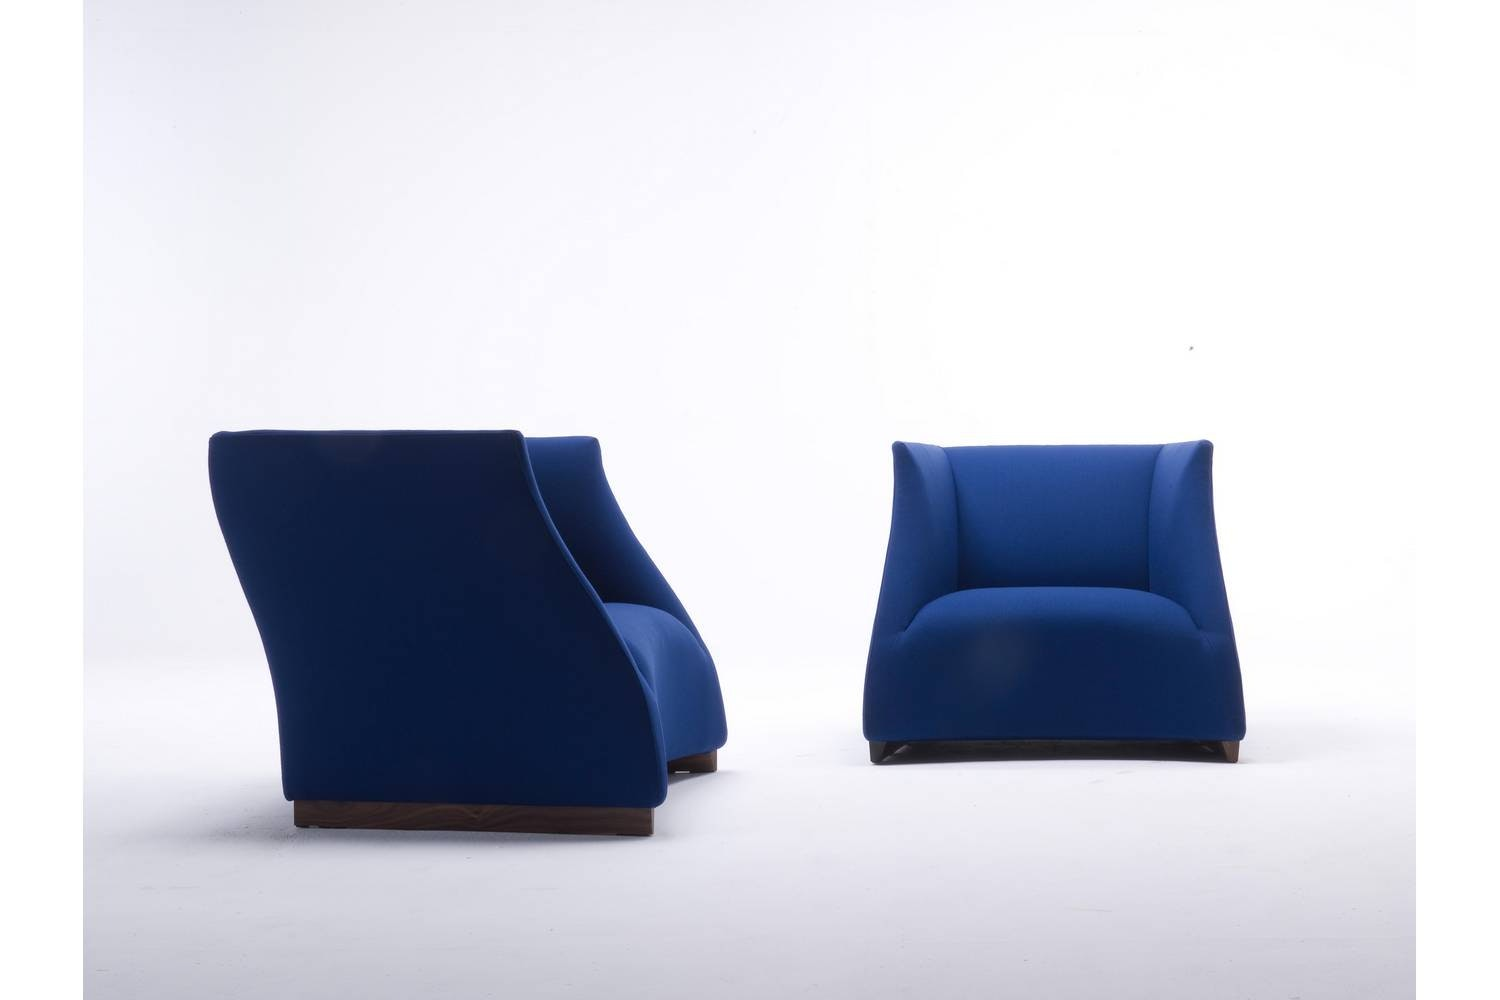 Vivienne Armchair by G. Carollo for Porada